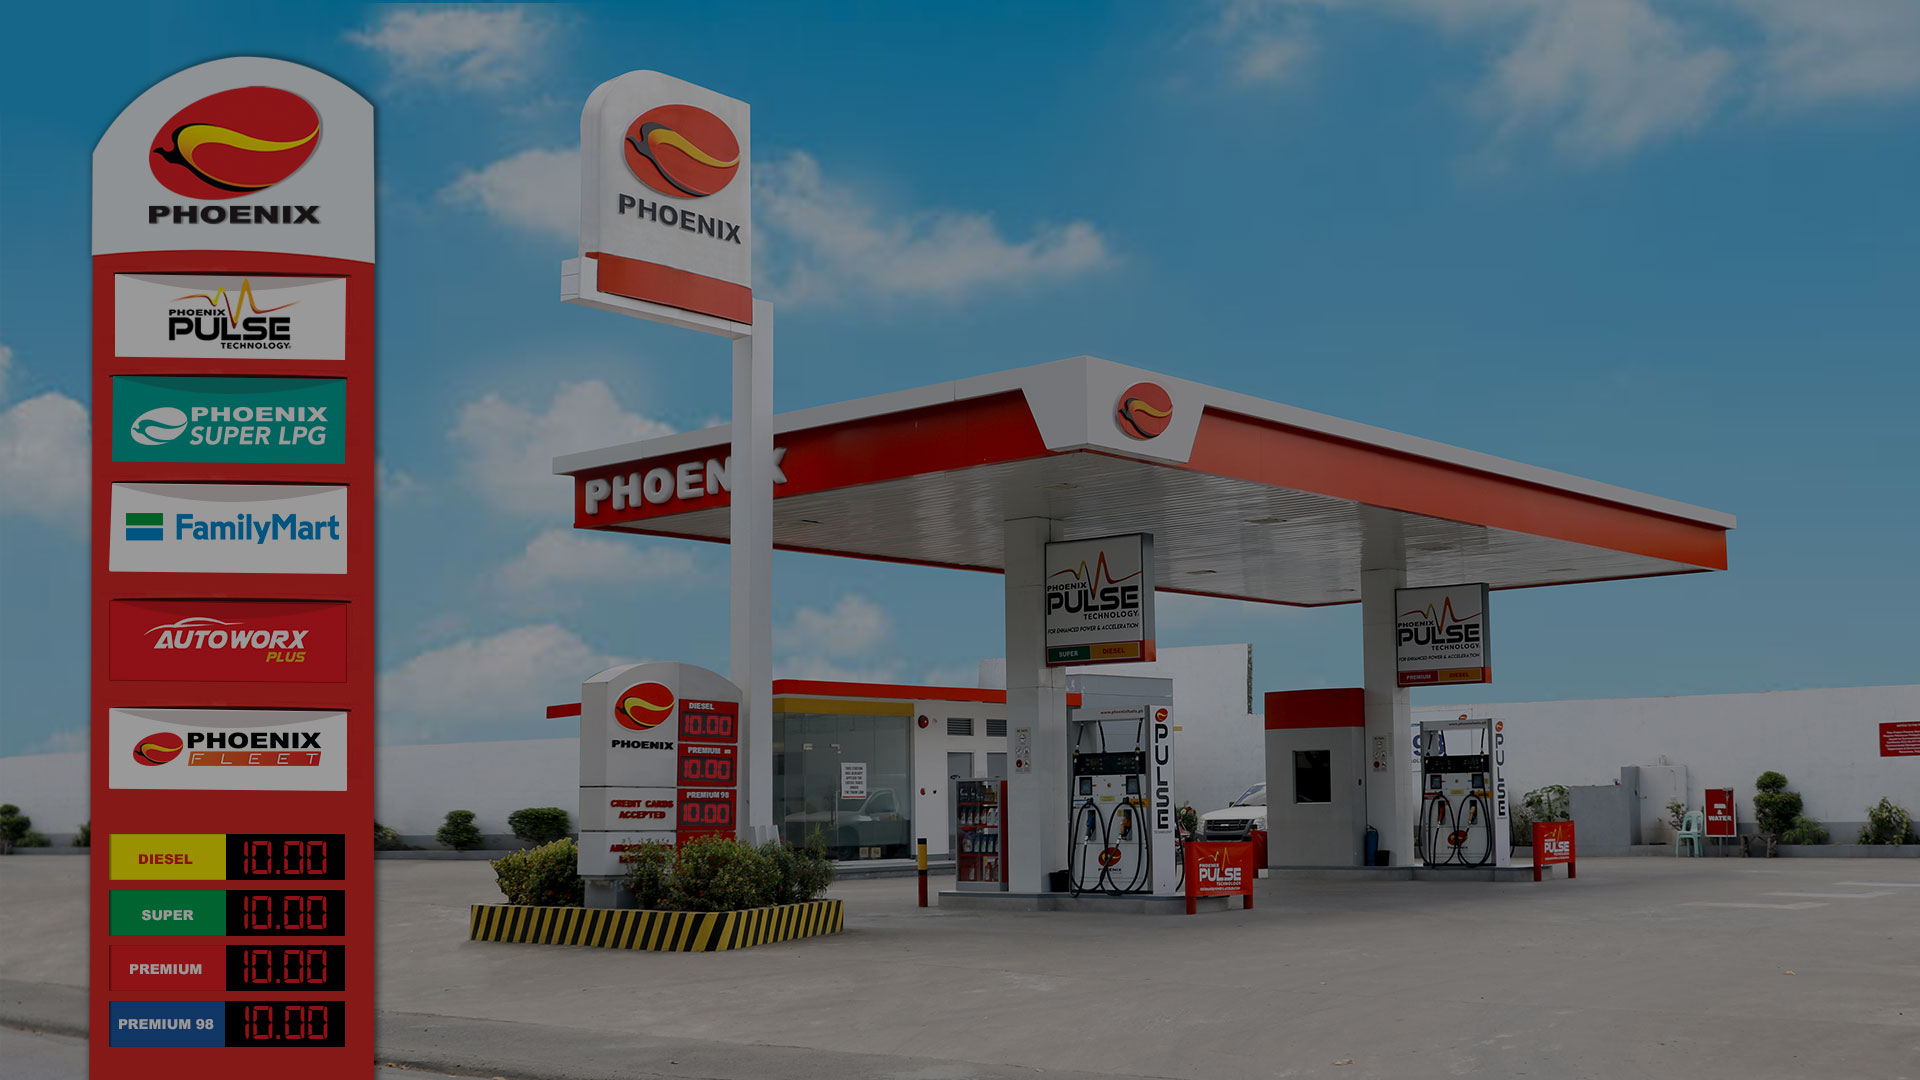 Phoenix Fuels - Leading Independent Oil Company in the Philippines - Gas Station